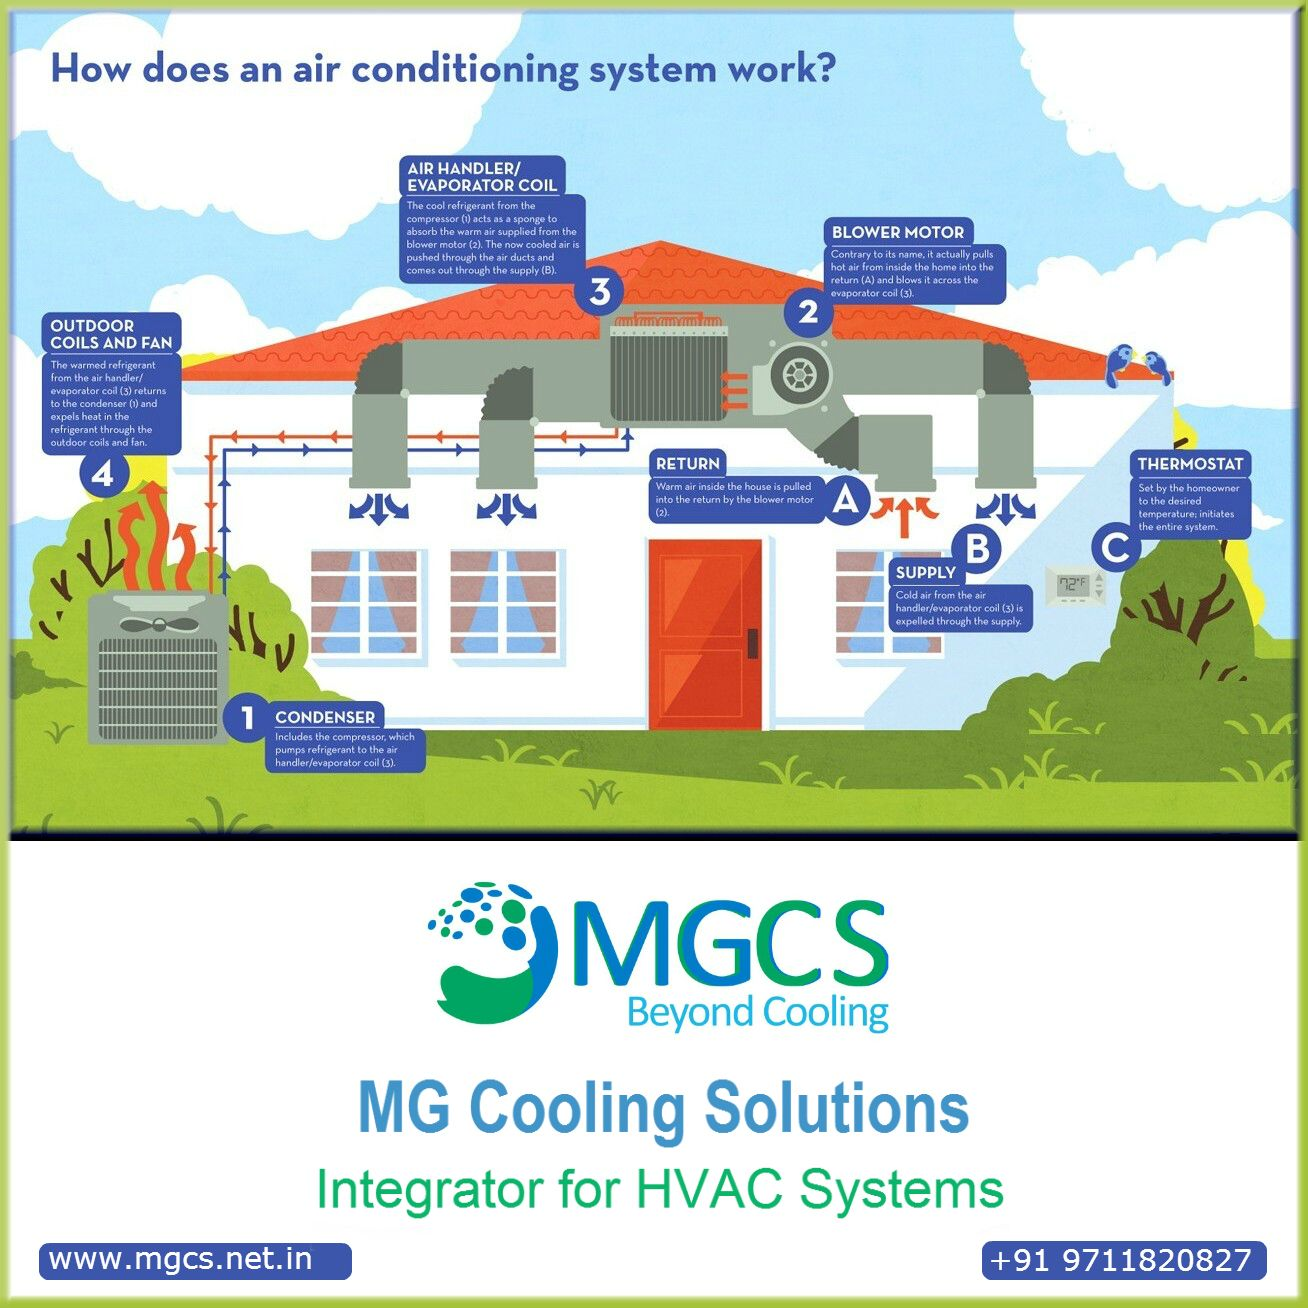 Mg Cooling Solution Top Hvac Comany In India Elaborated Via